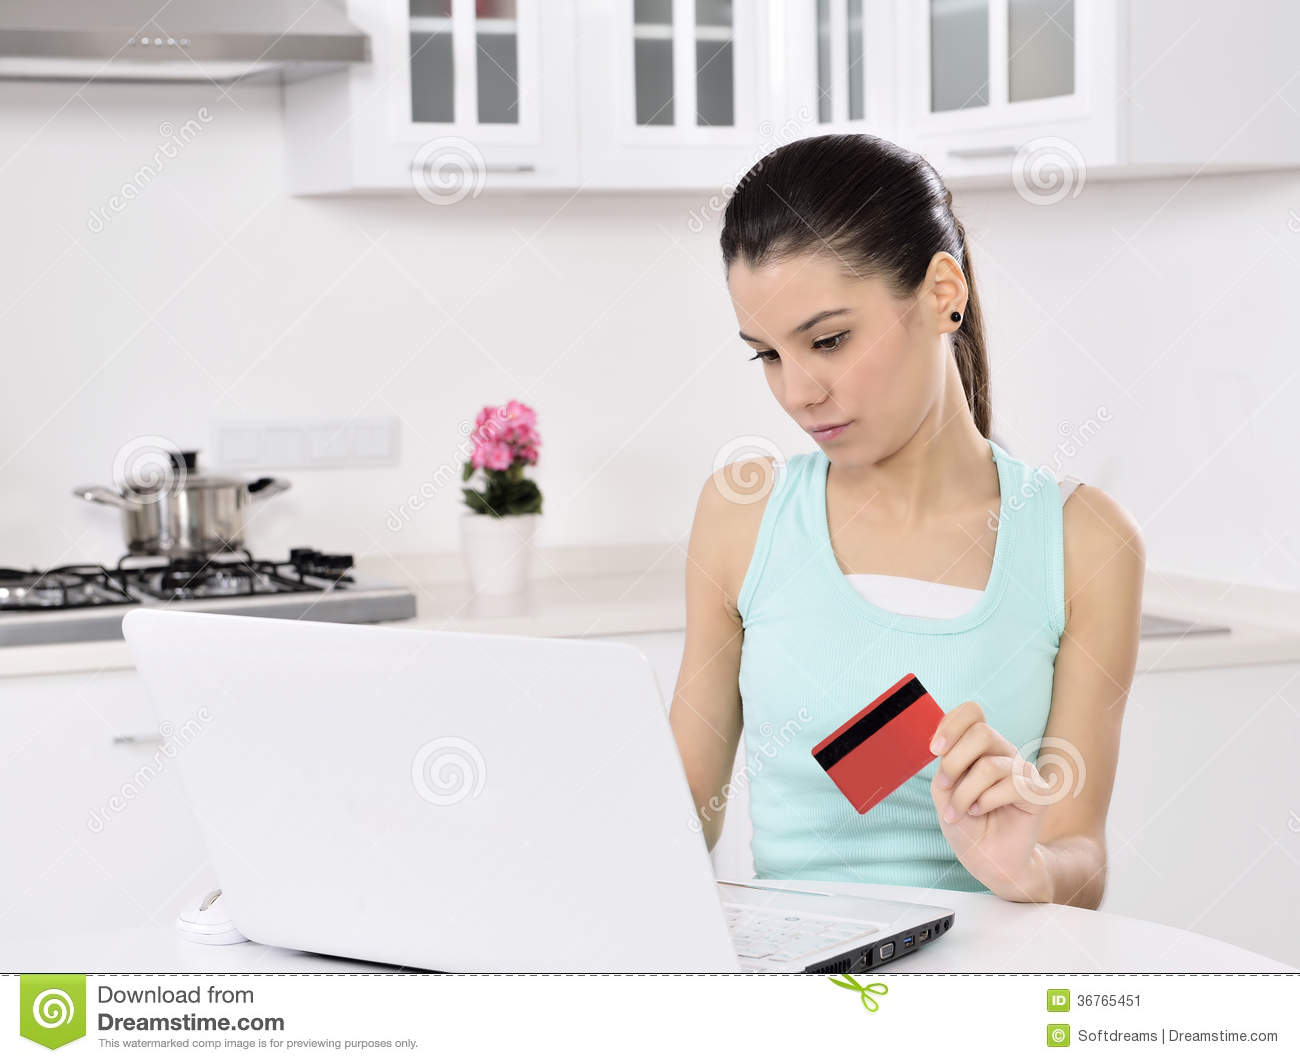 Woman Shopping Online At Home Stock Image - Image: 36765451